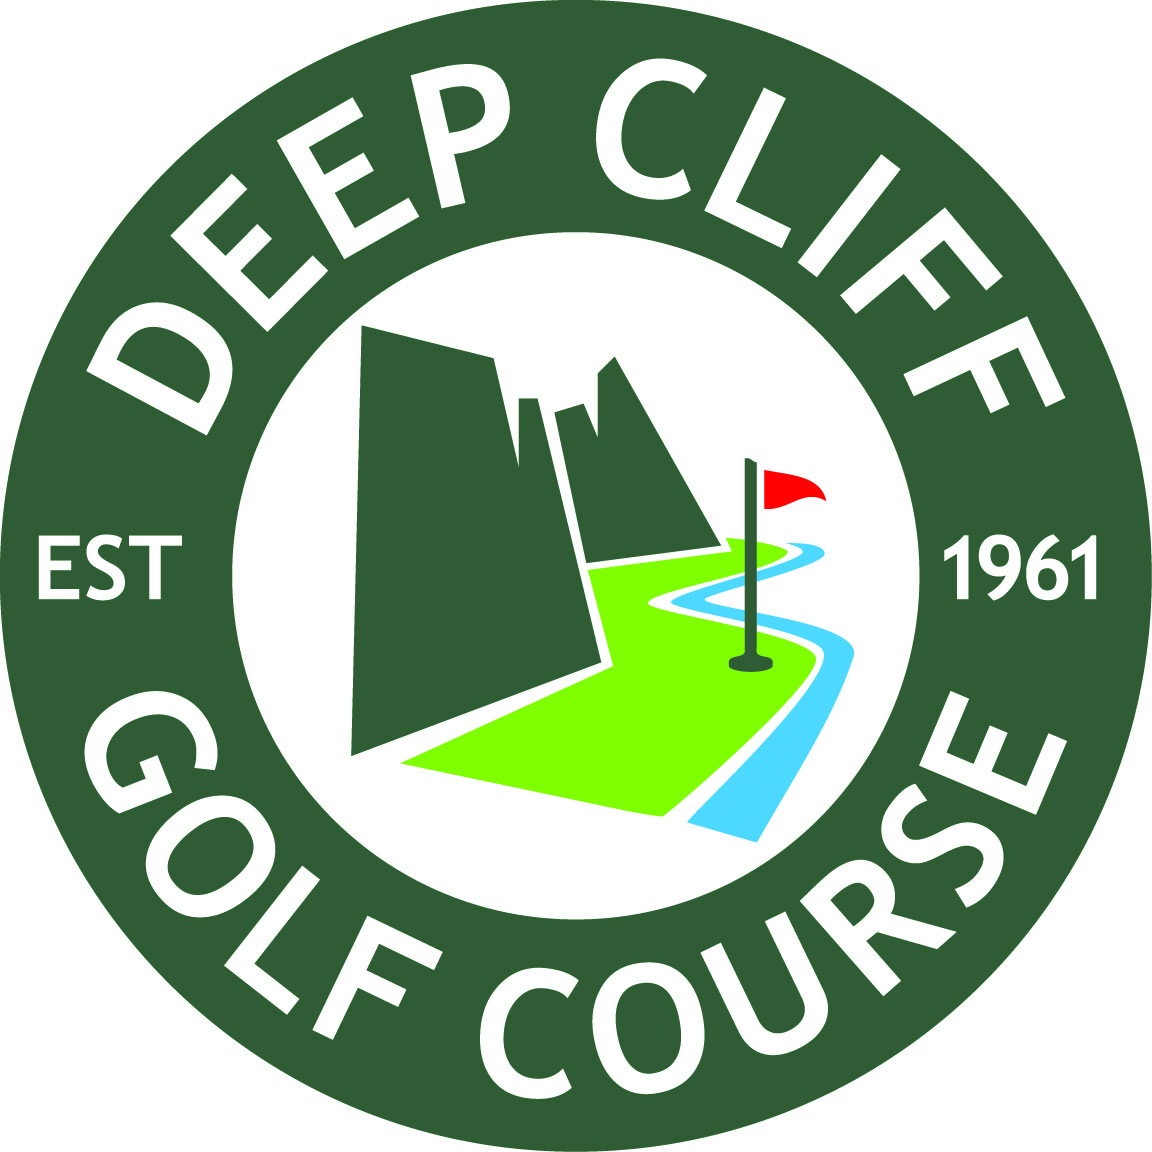 Deep Cliff circle logo color